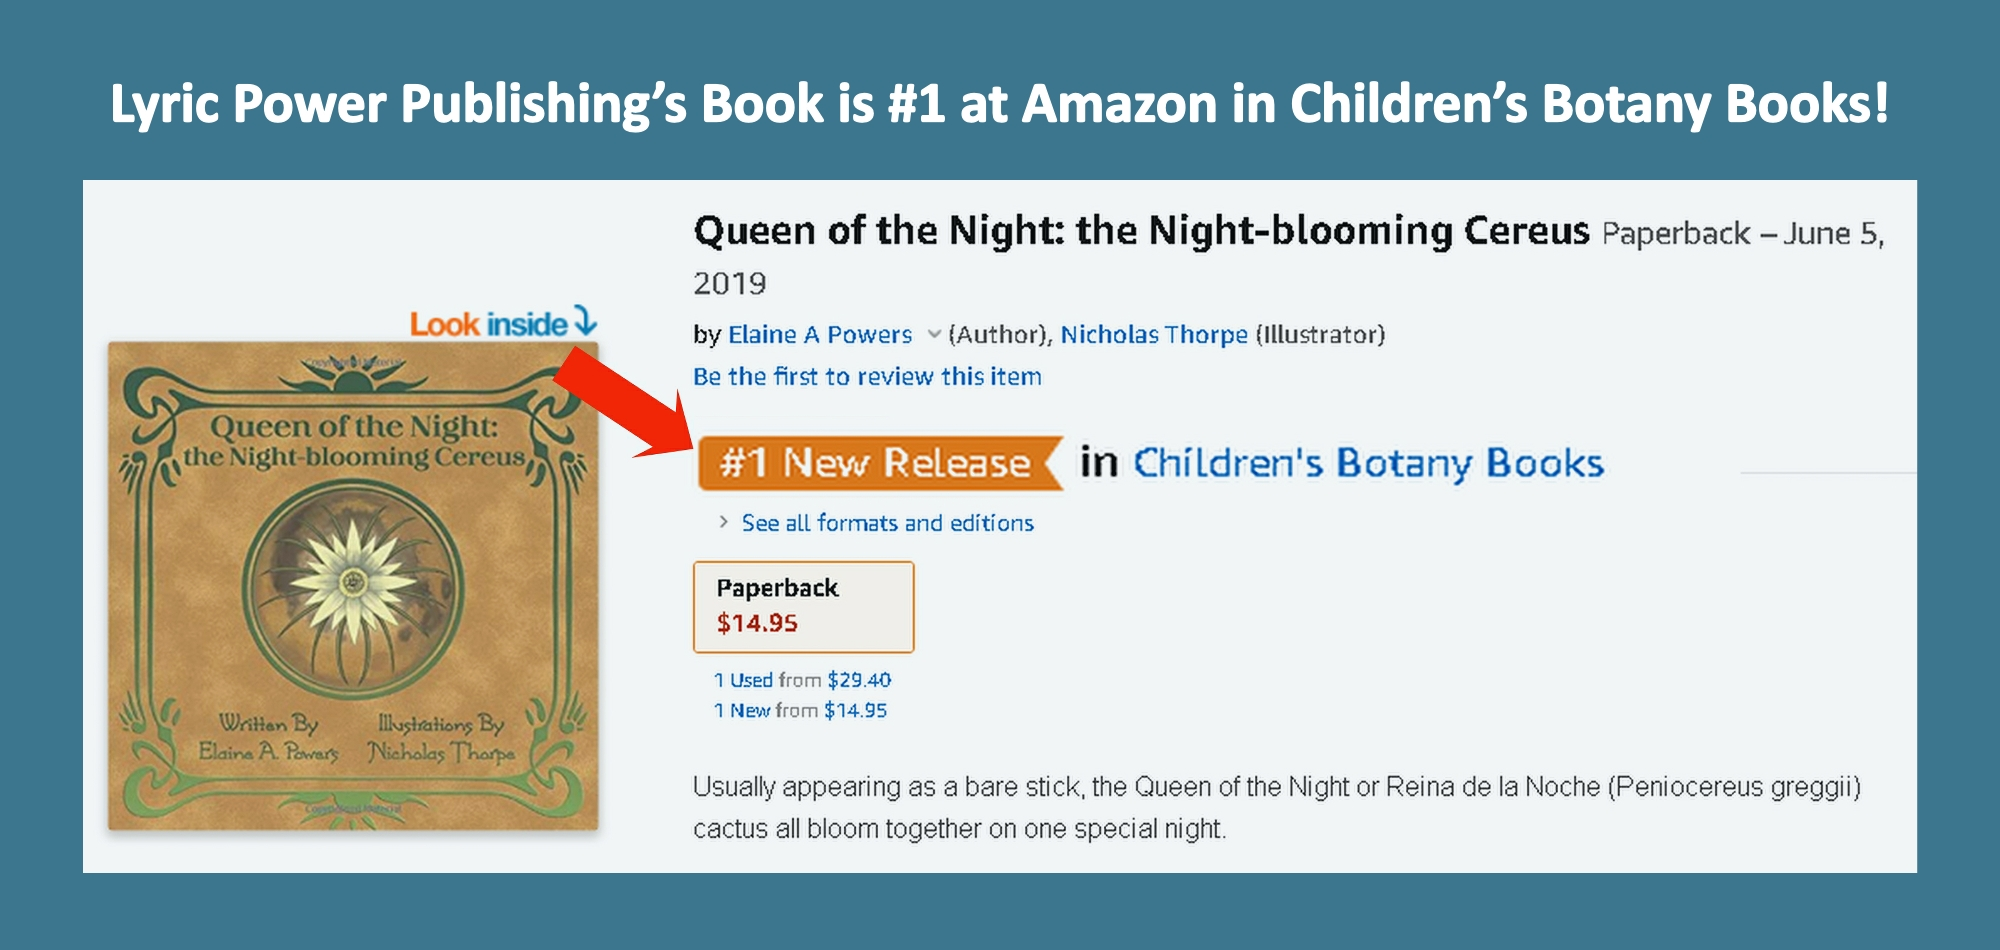 Graphic of No 1 book at Amazon